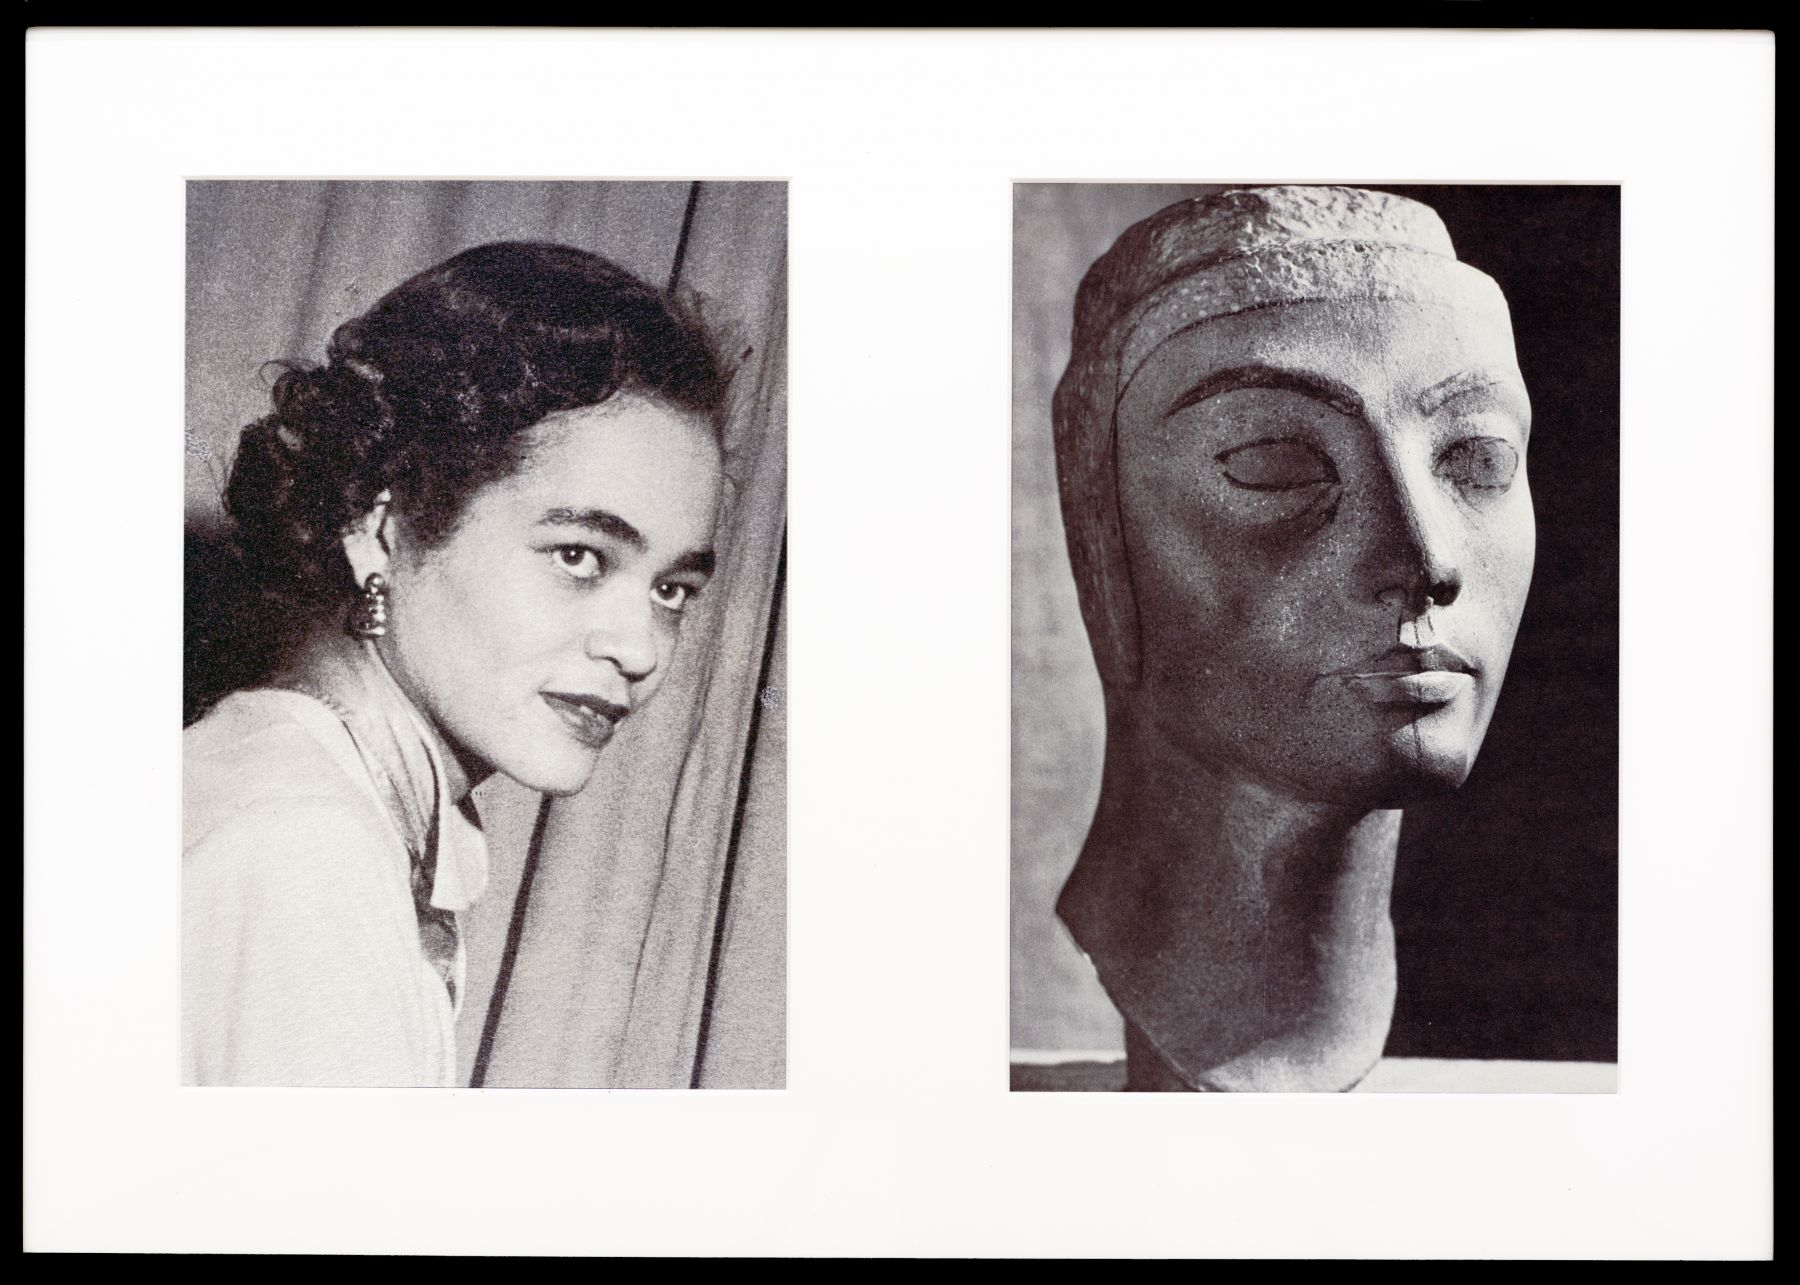 Miscegenated Family Album (Progress of Queens), L: Devonia, age 36; R: Nefertiti, age 36, 1980/1994, Cibachrome print, 26h x 37w in (66.04h x 93.98w cm)